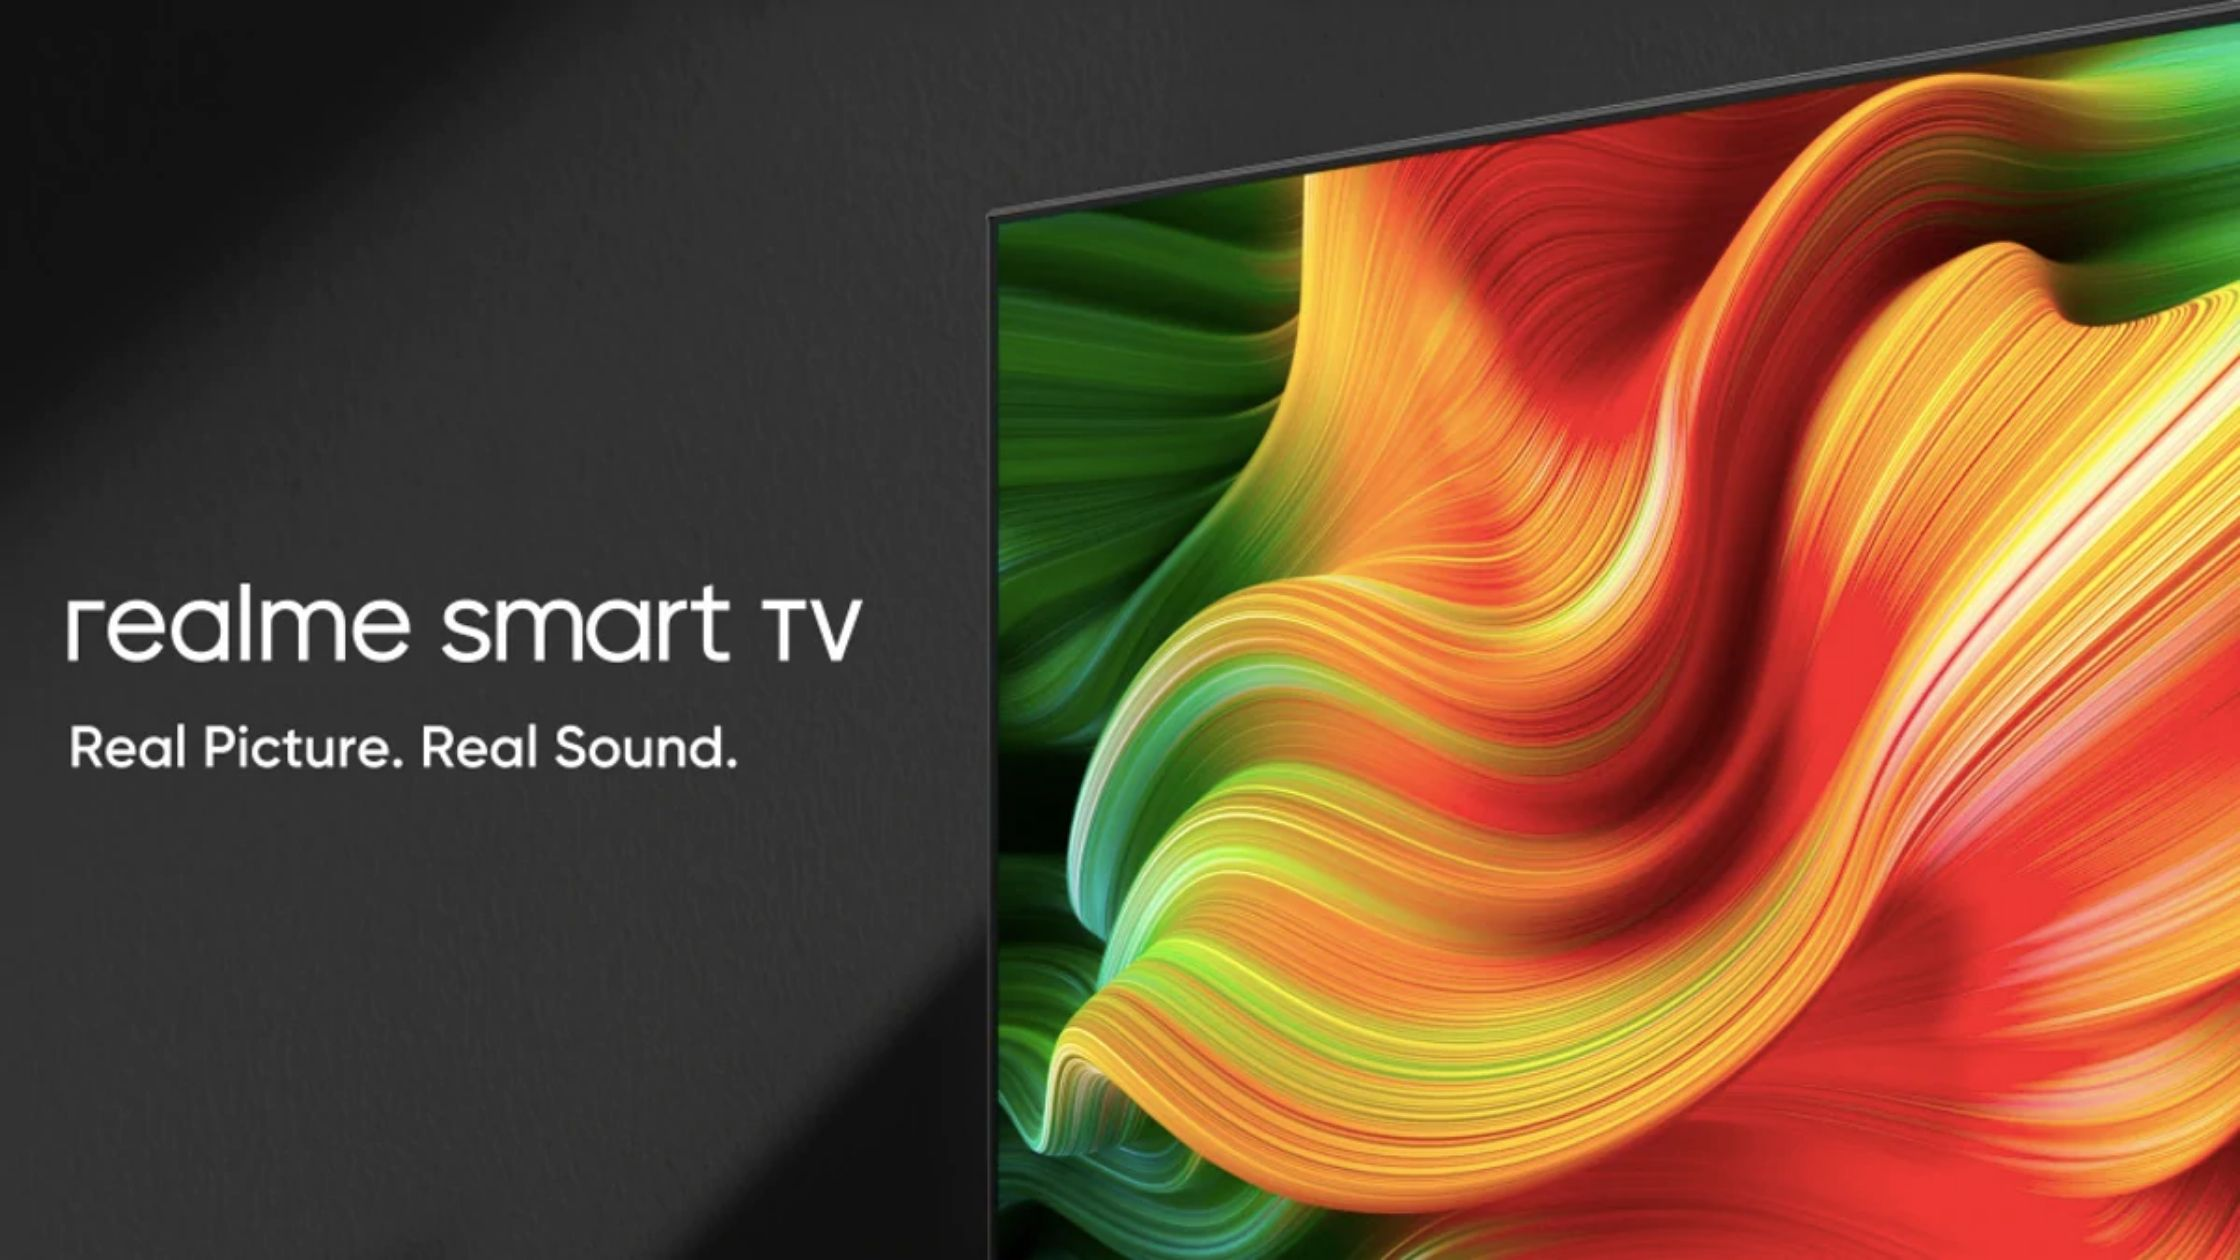 REALME Launched 32, 43 inch smart TV in India starting at Rs 12,999